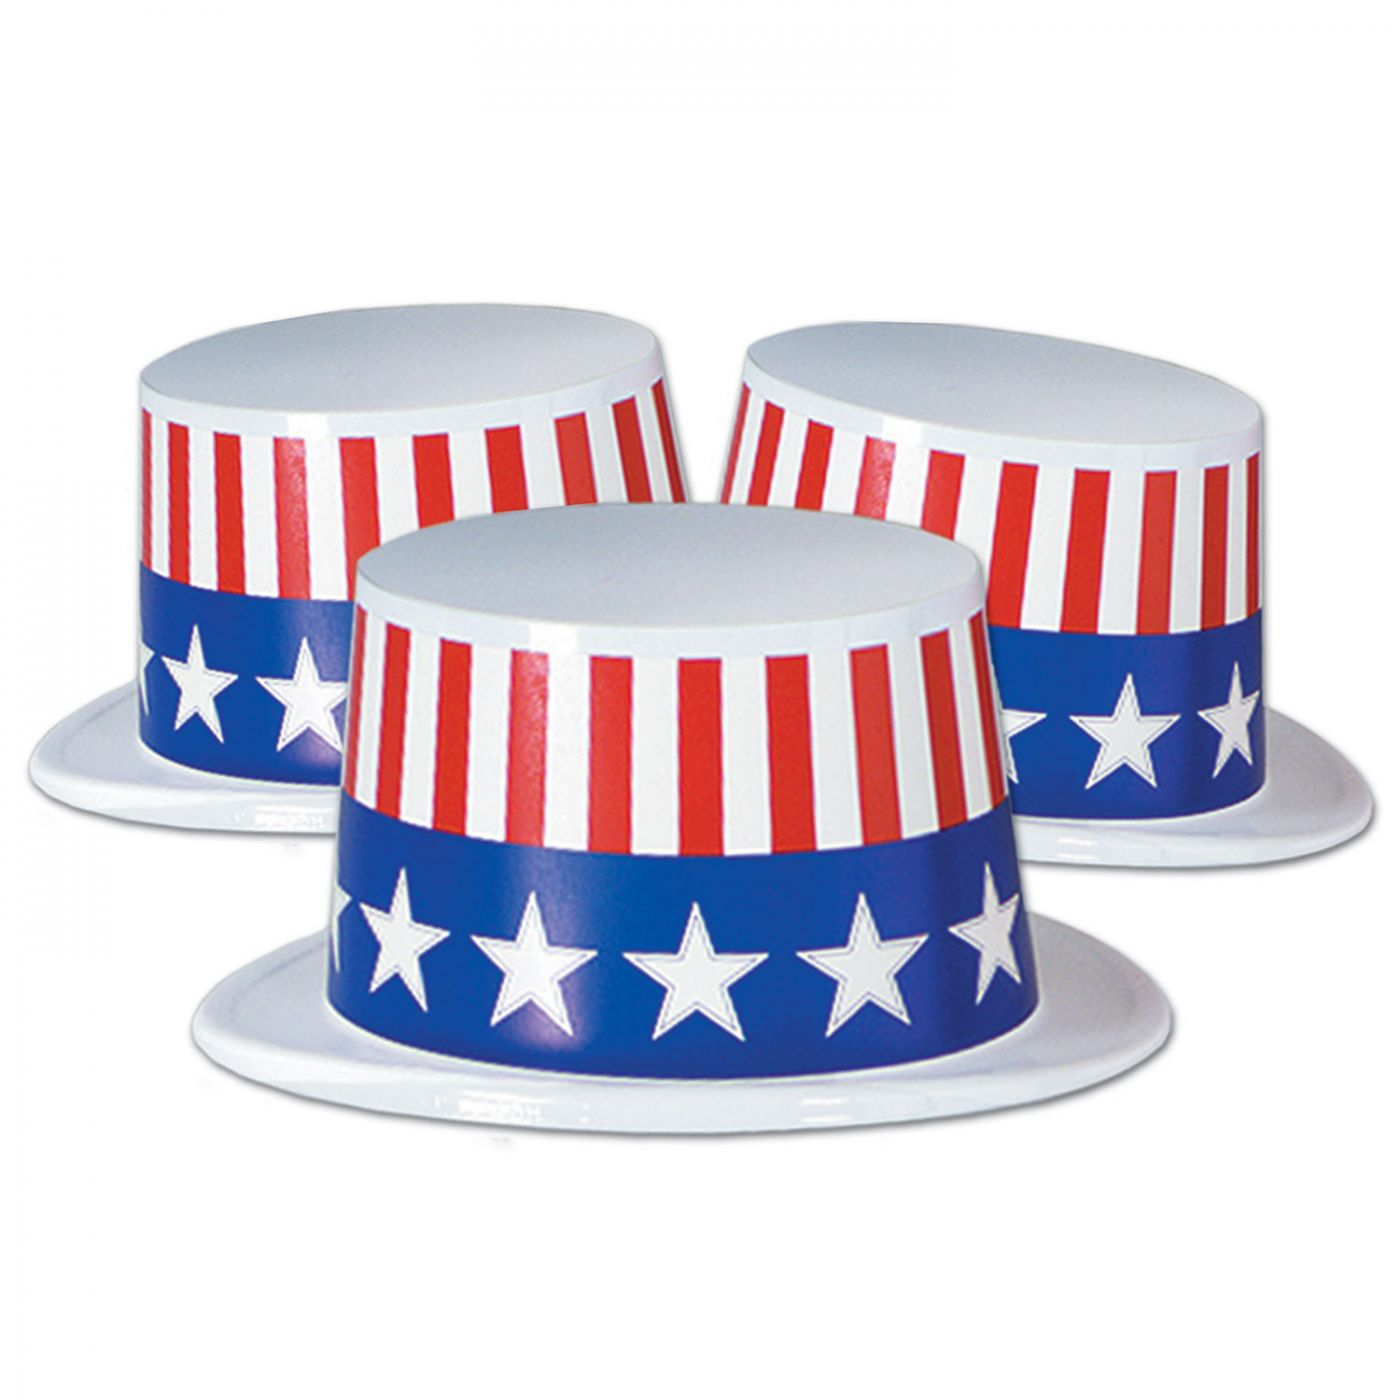 Plastic Topper w/Patriotic Band (25) image